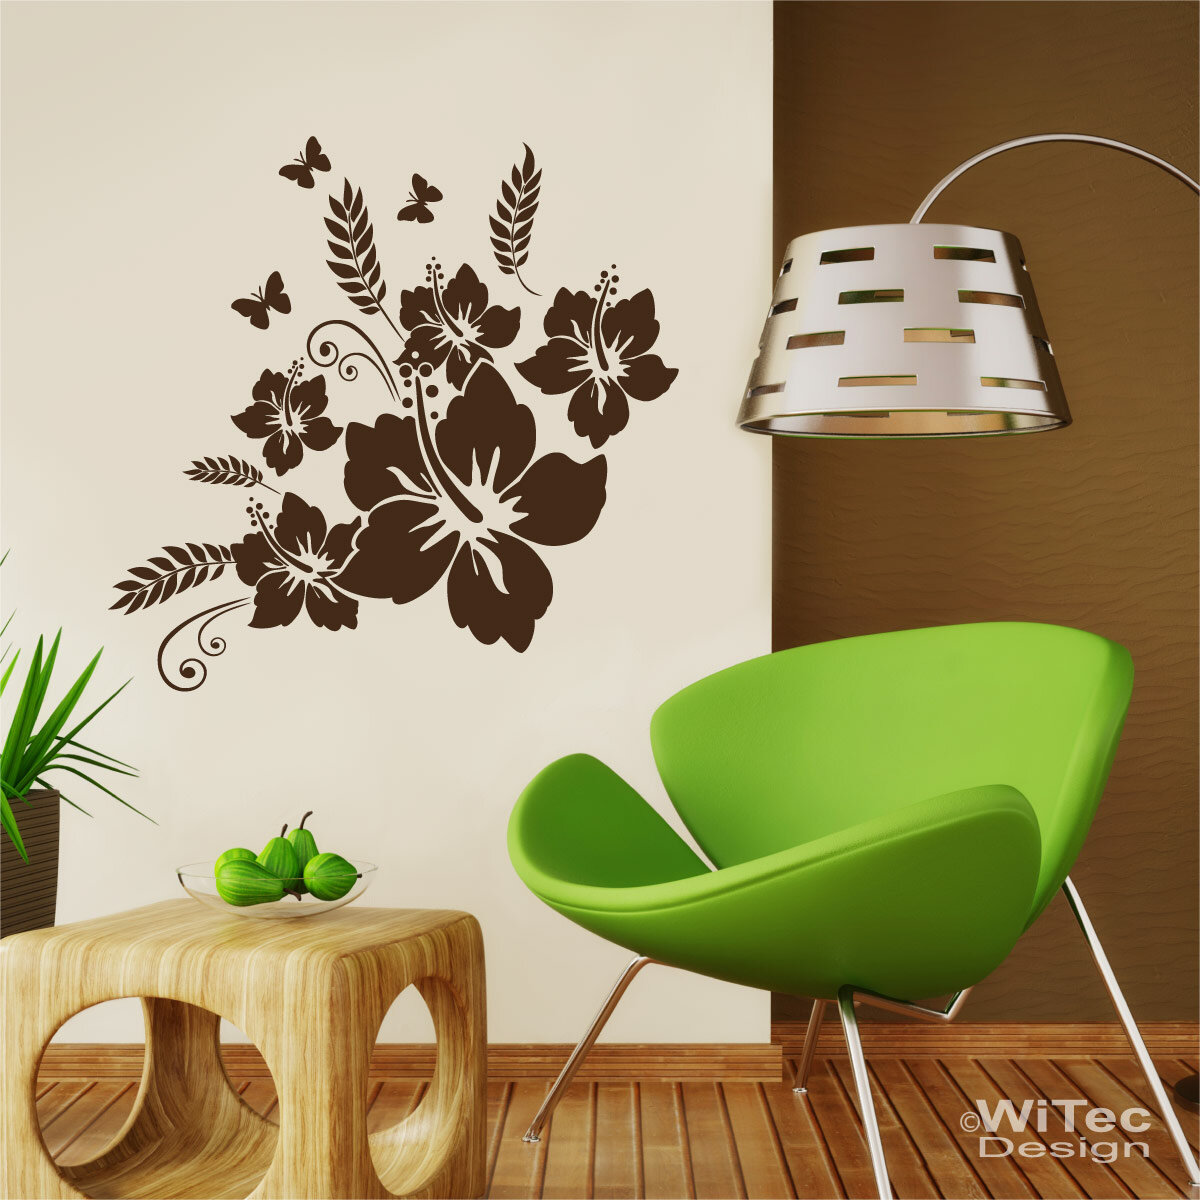 wandaufkleber hibiskus schmetterlinge wandtattoo. Black Bedroom Furniture Sets. Home Design Ideas